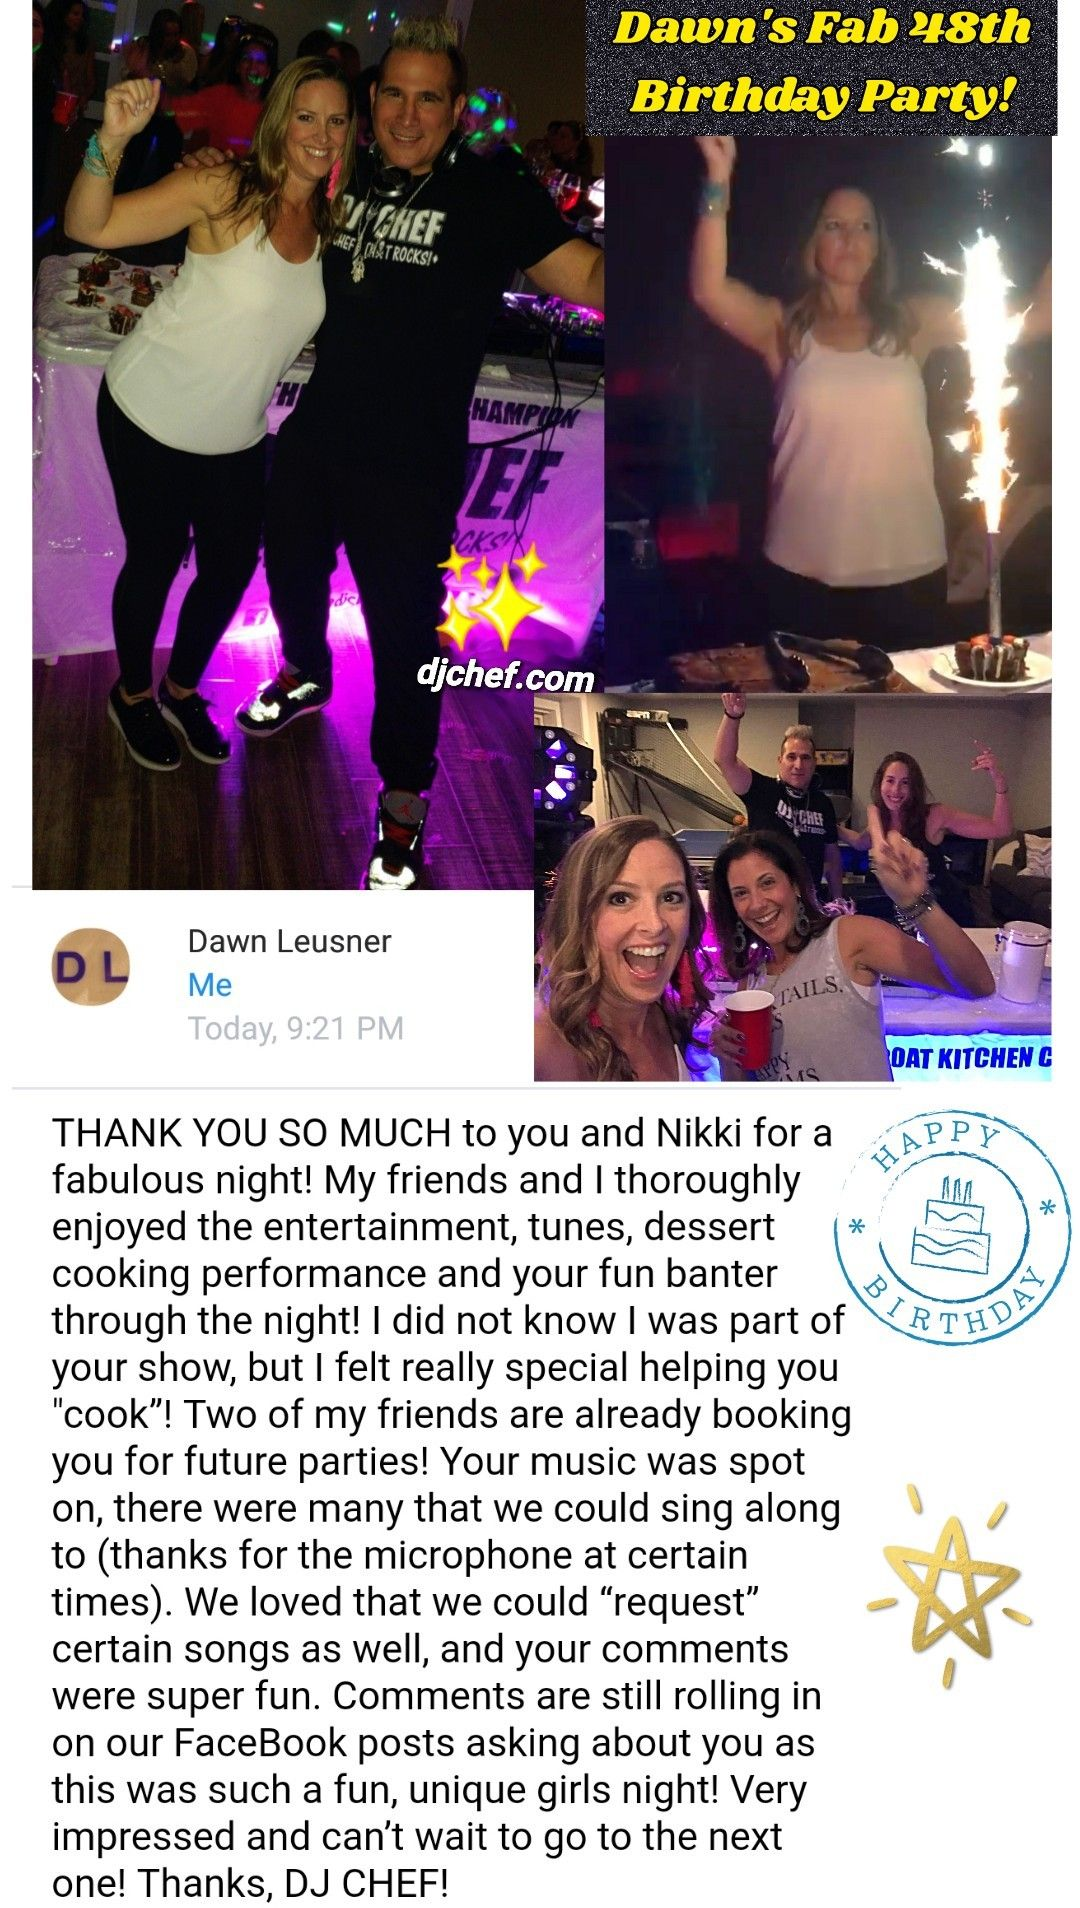 FAB 50TH BIRTHDAY IDEAS LONG ISLAND NEW JERSEY DJ CHEF HAMPTONS WESTCHESTER 40TH PARTY COOKING FOOD NETWORK TOP EVENTS ENTERTAINMENT